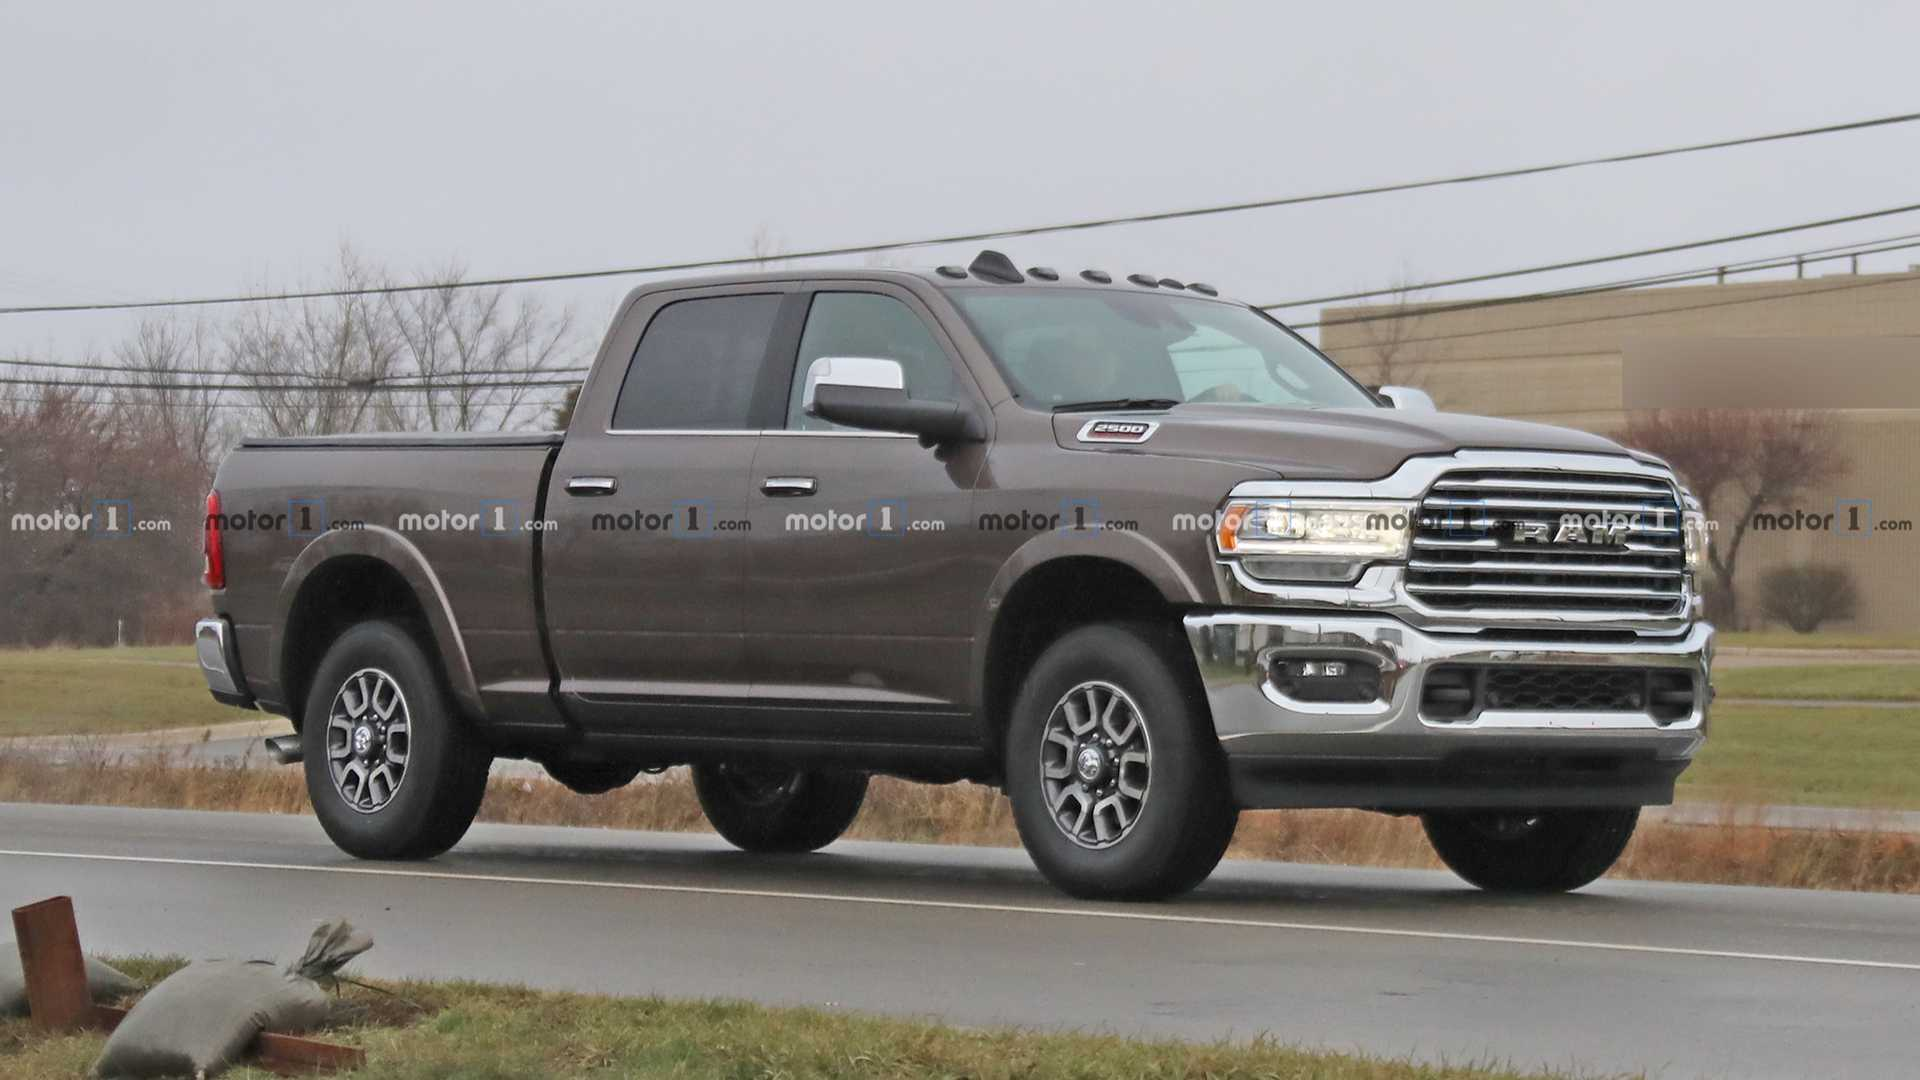 48 Concept of 2020 Ram 3500 Diesel Picture with 2020 Ram 3500 Diesel